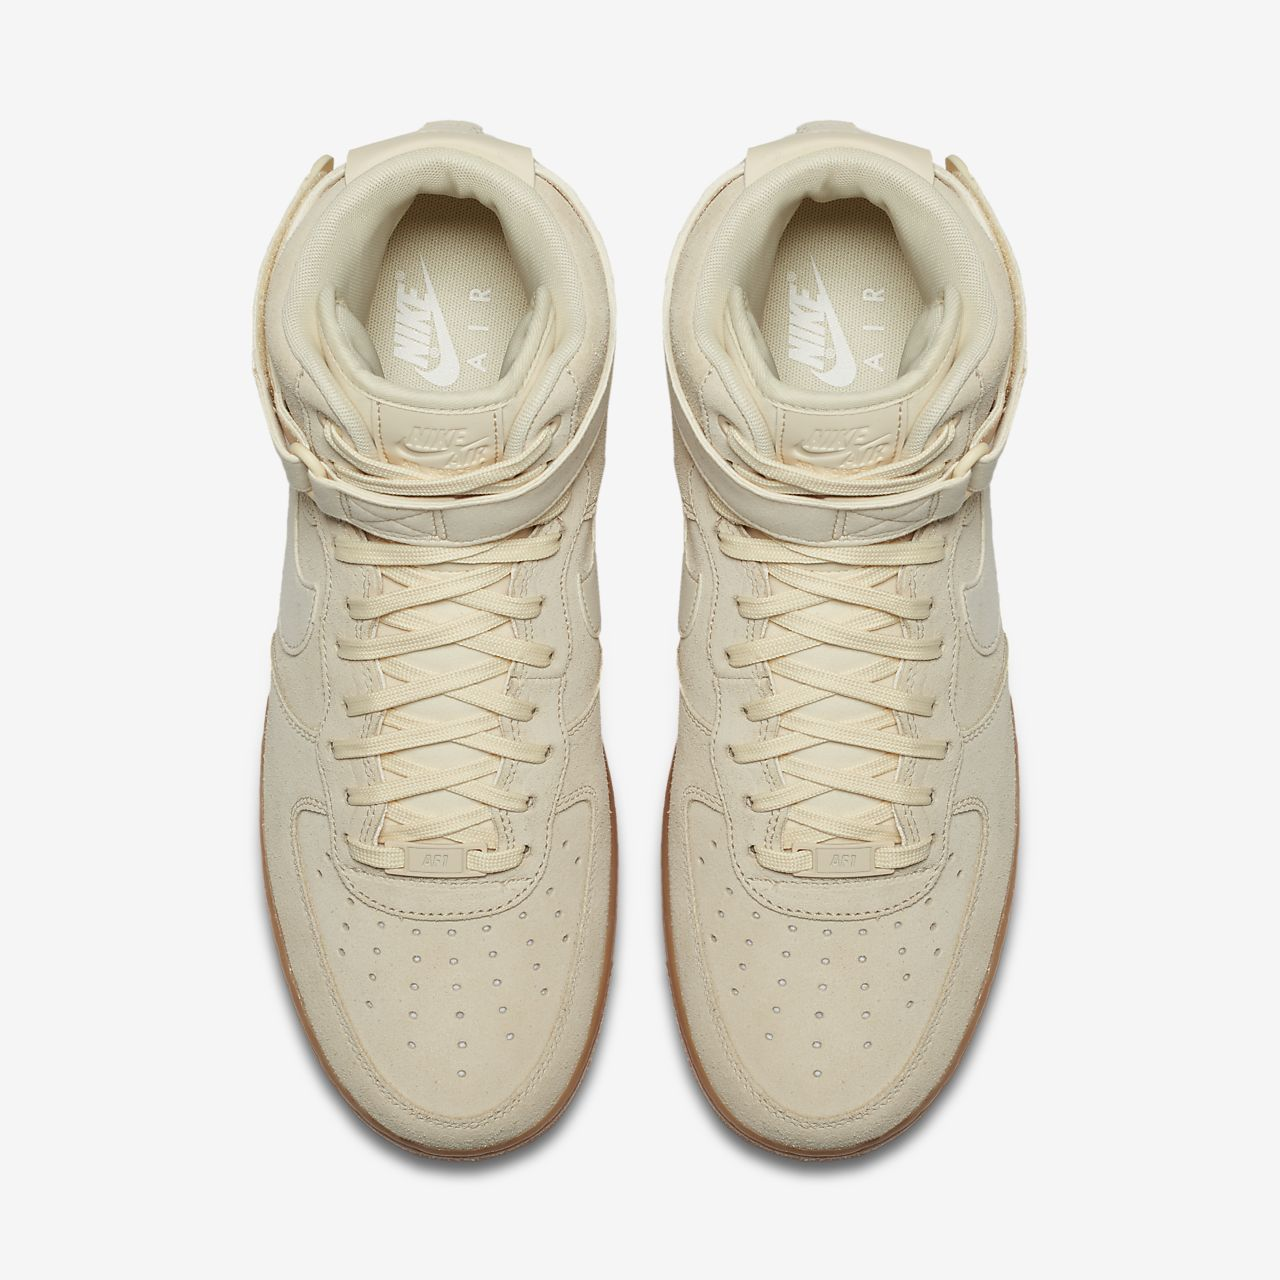 ... Nike Air Force 1 High '07 LV8 Suede Men's Shoe